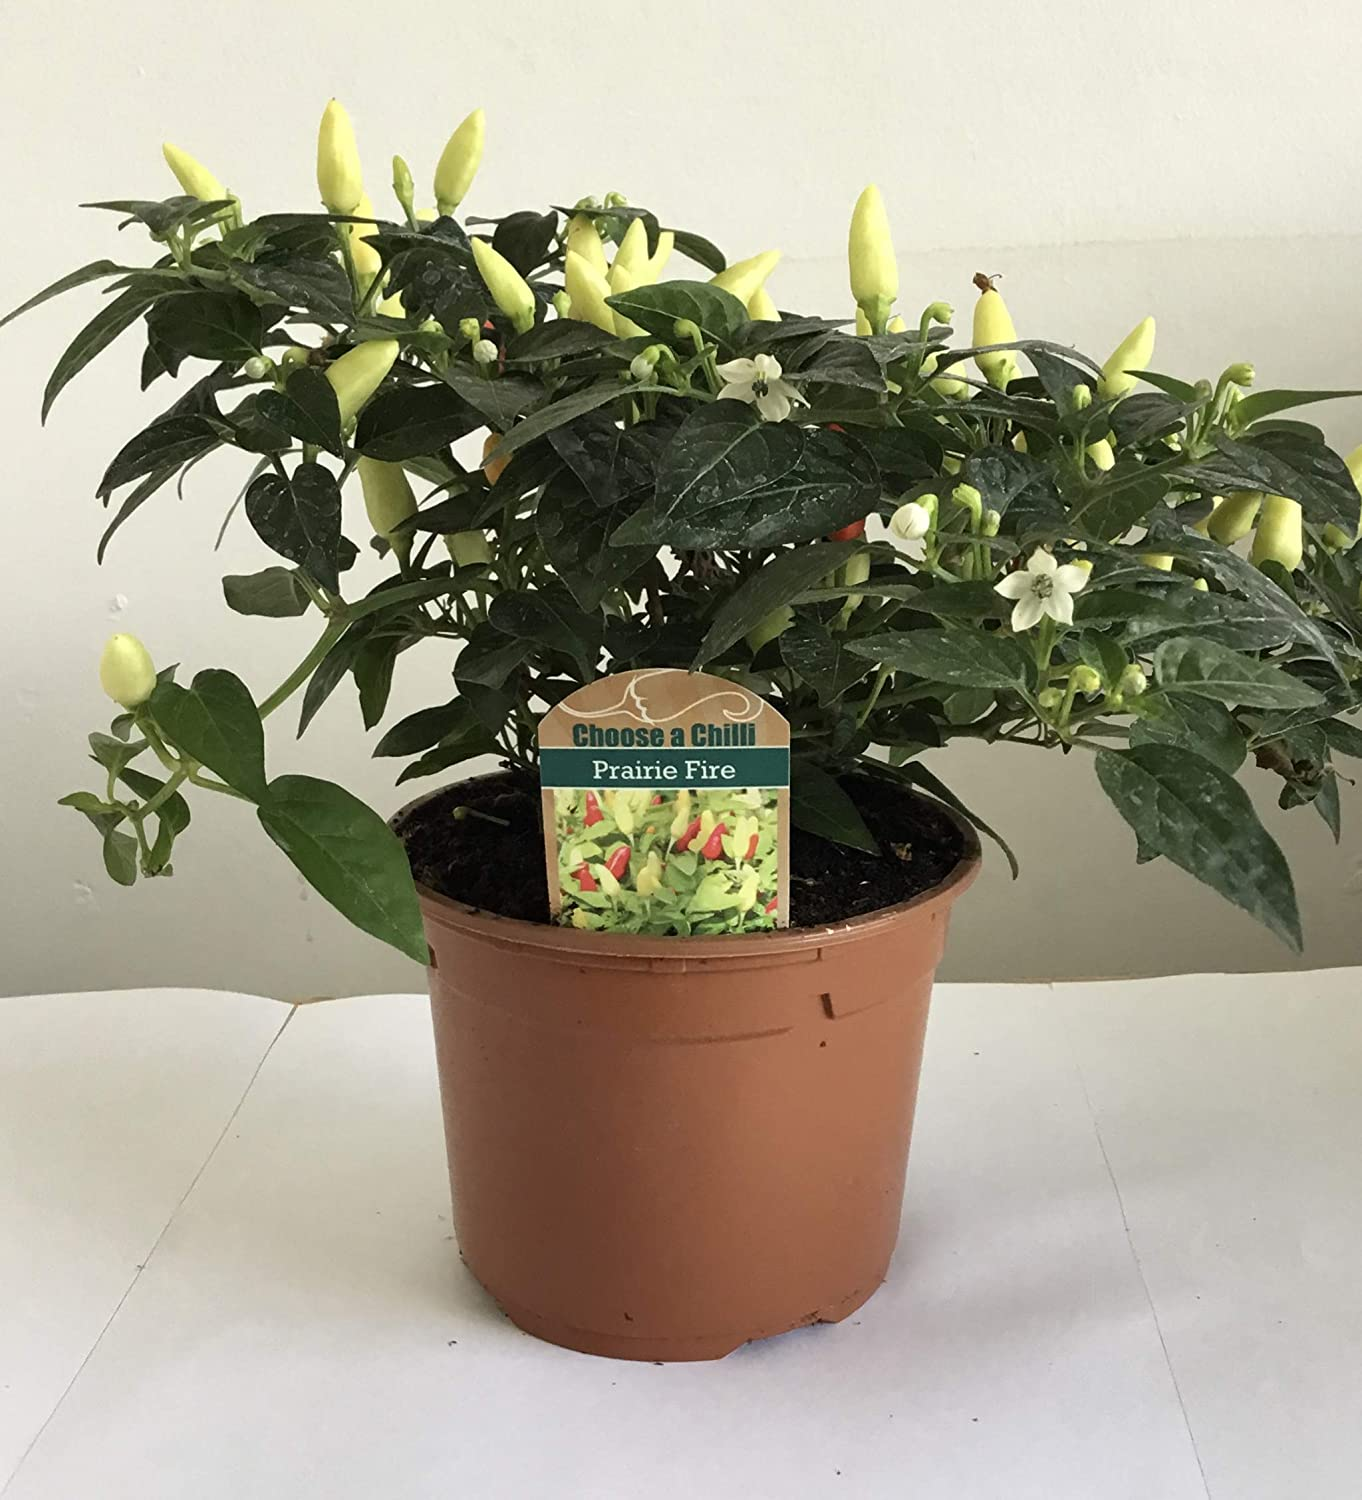 Chilli Pepper Prairie Fire 2 Large Plants in 1 Litre Pots Available Now!